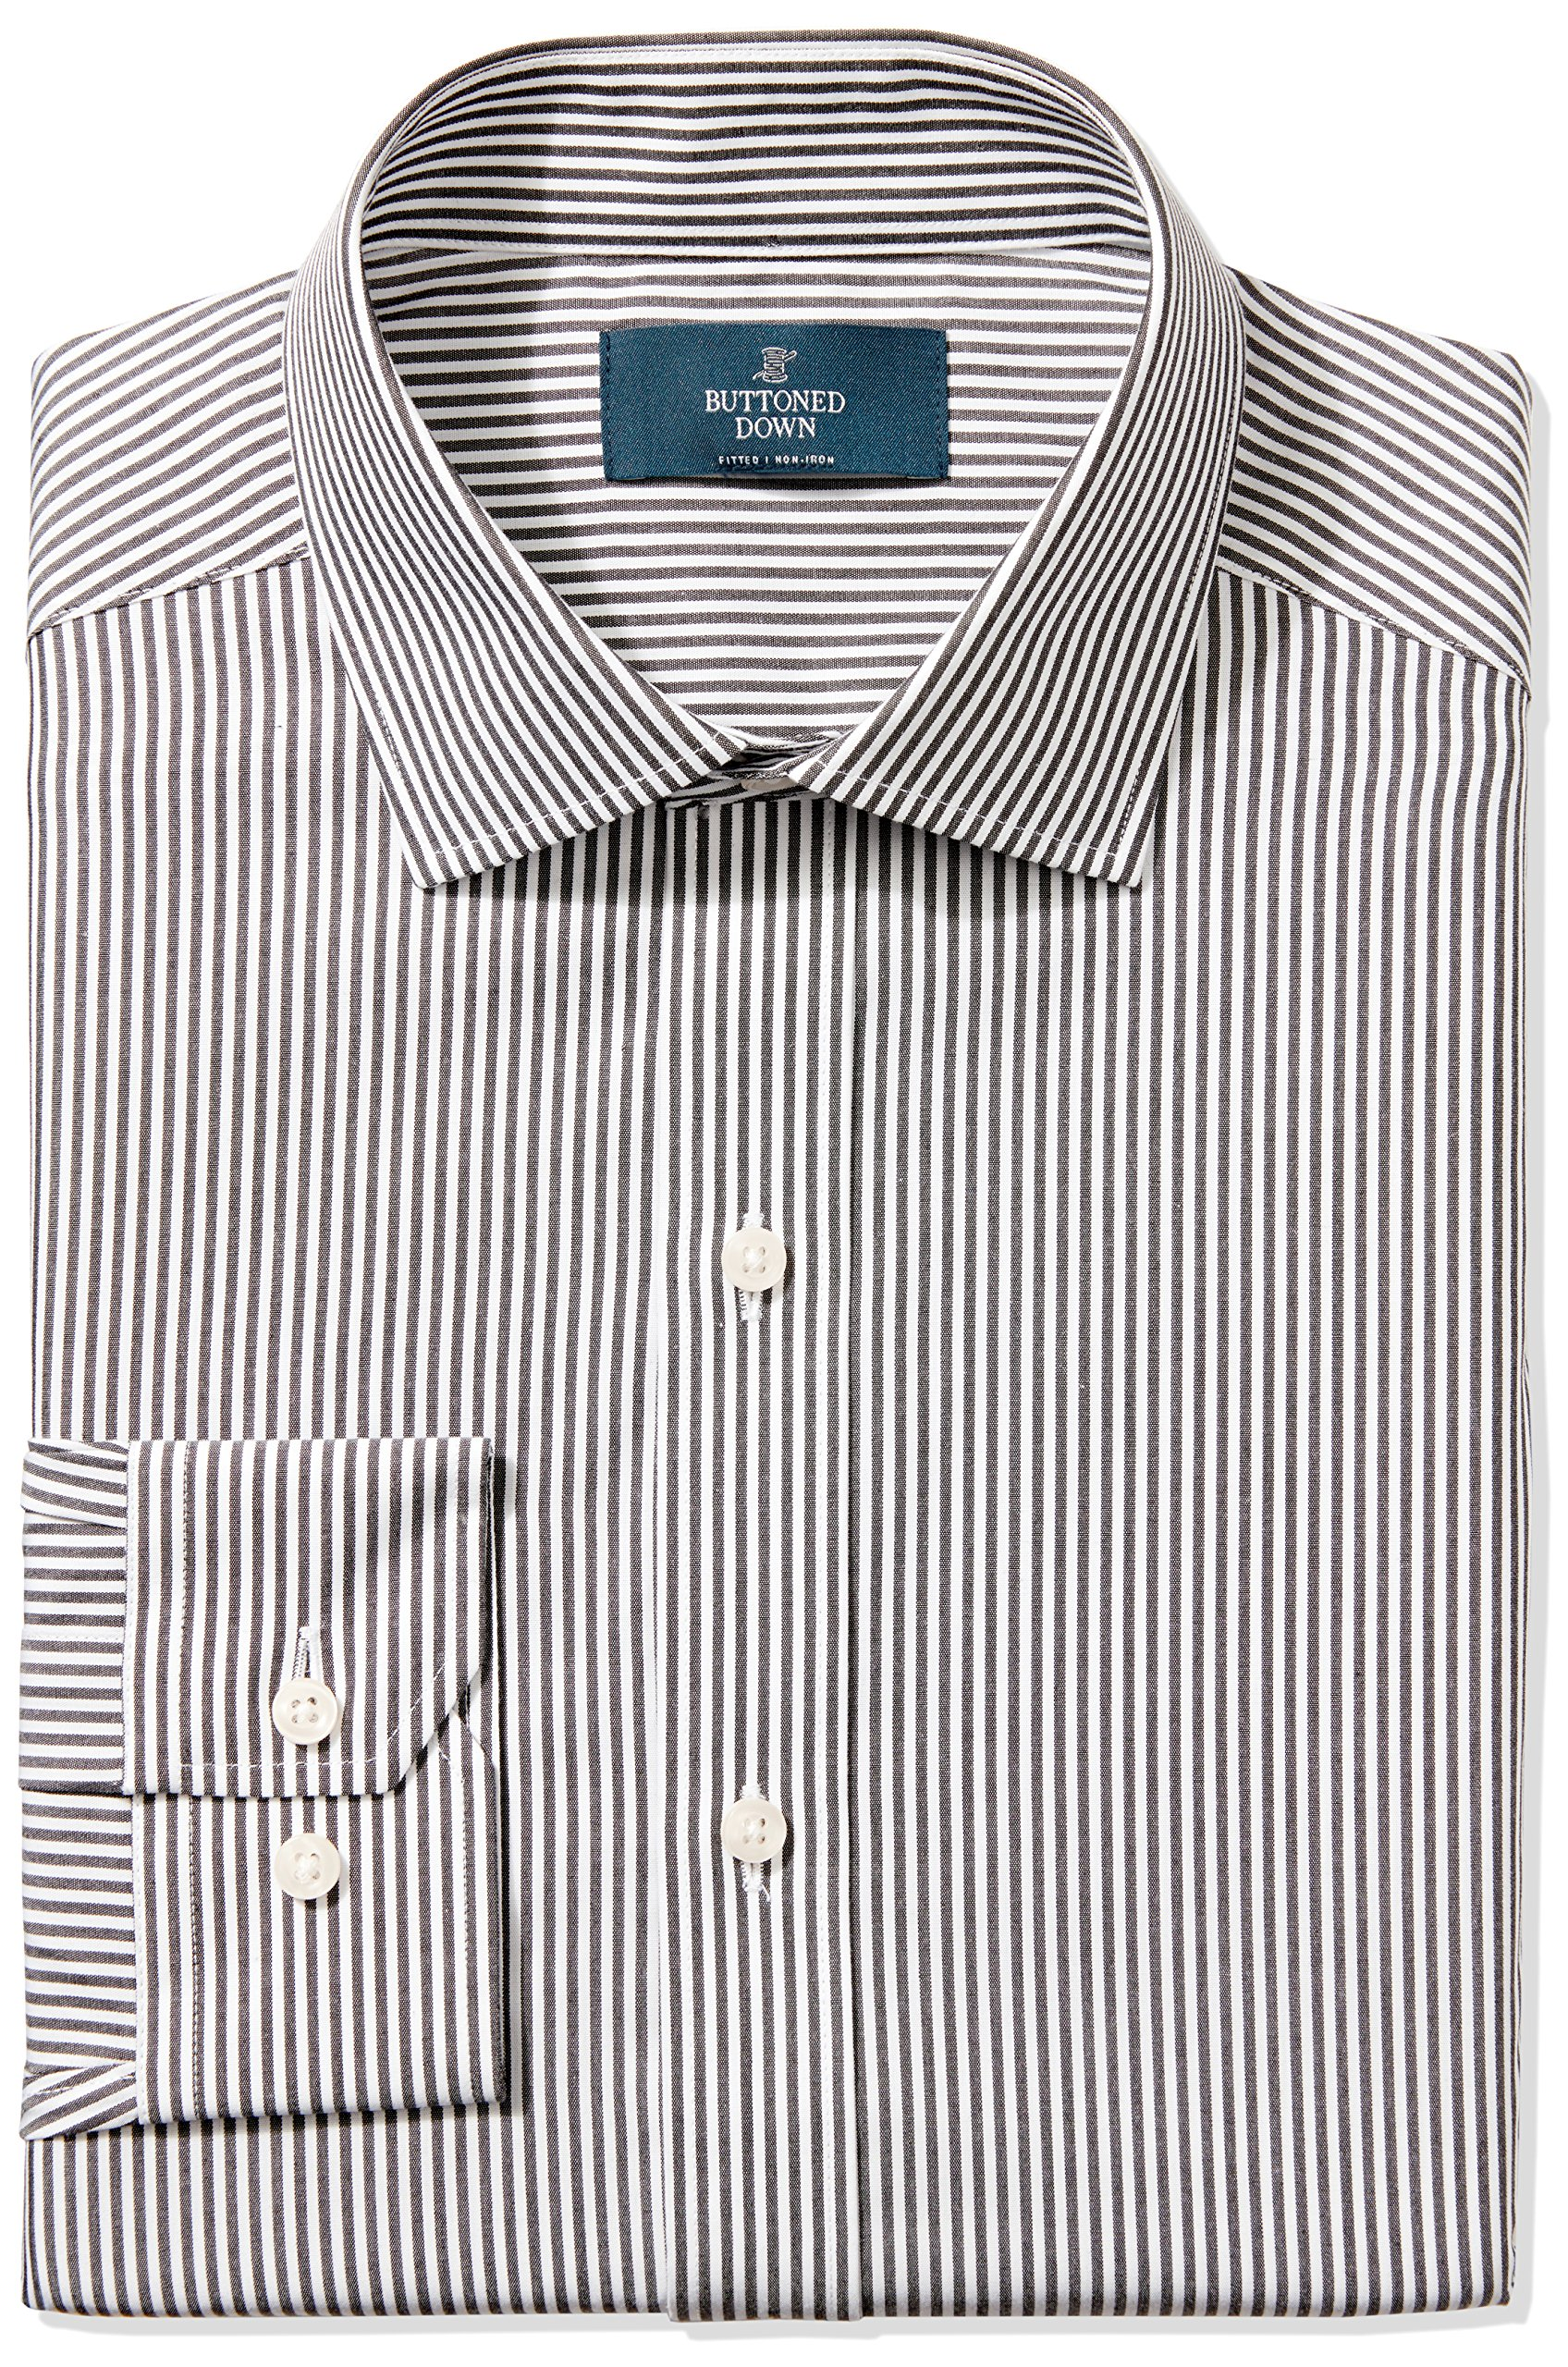 Buttoned Down Men's Fitted Spread-Collar Non-Iron Dress Shirt, Black Bengal Stripe, 20'' Neck 36'' Sleeve (Big and Tall)